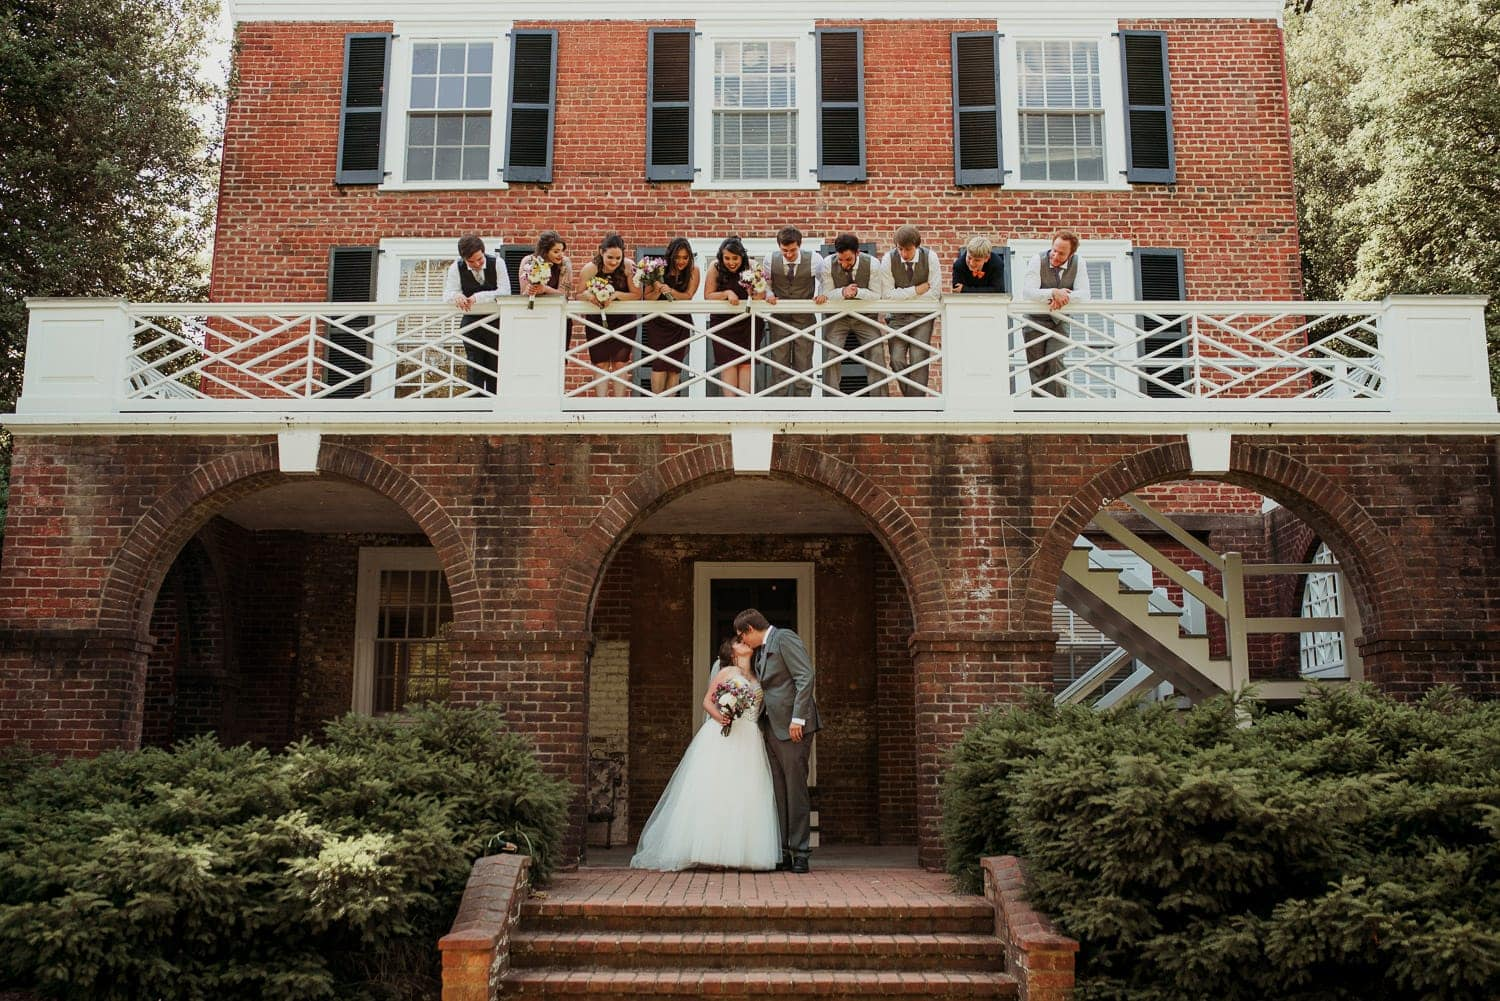 The bride and groom are kissing below a balcony where their wedding party is standing and looking at them.